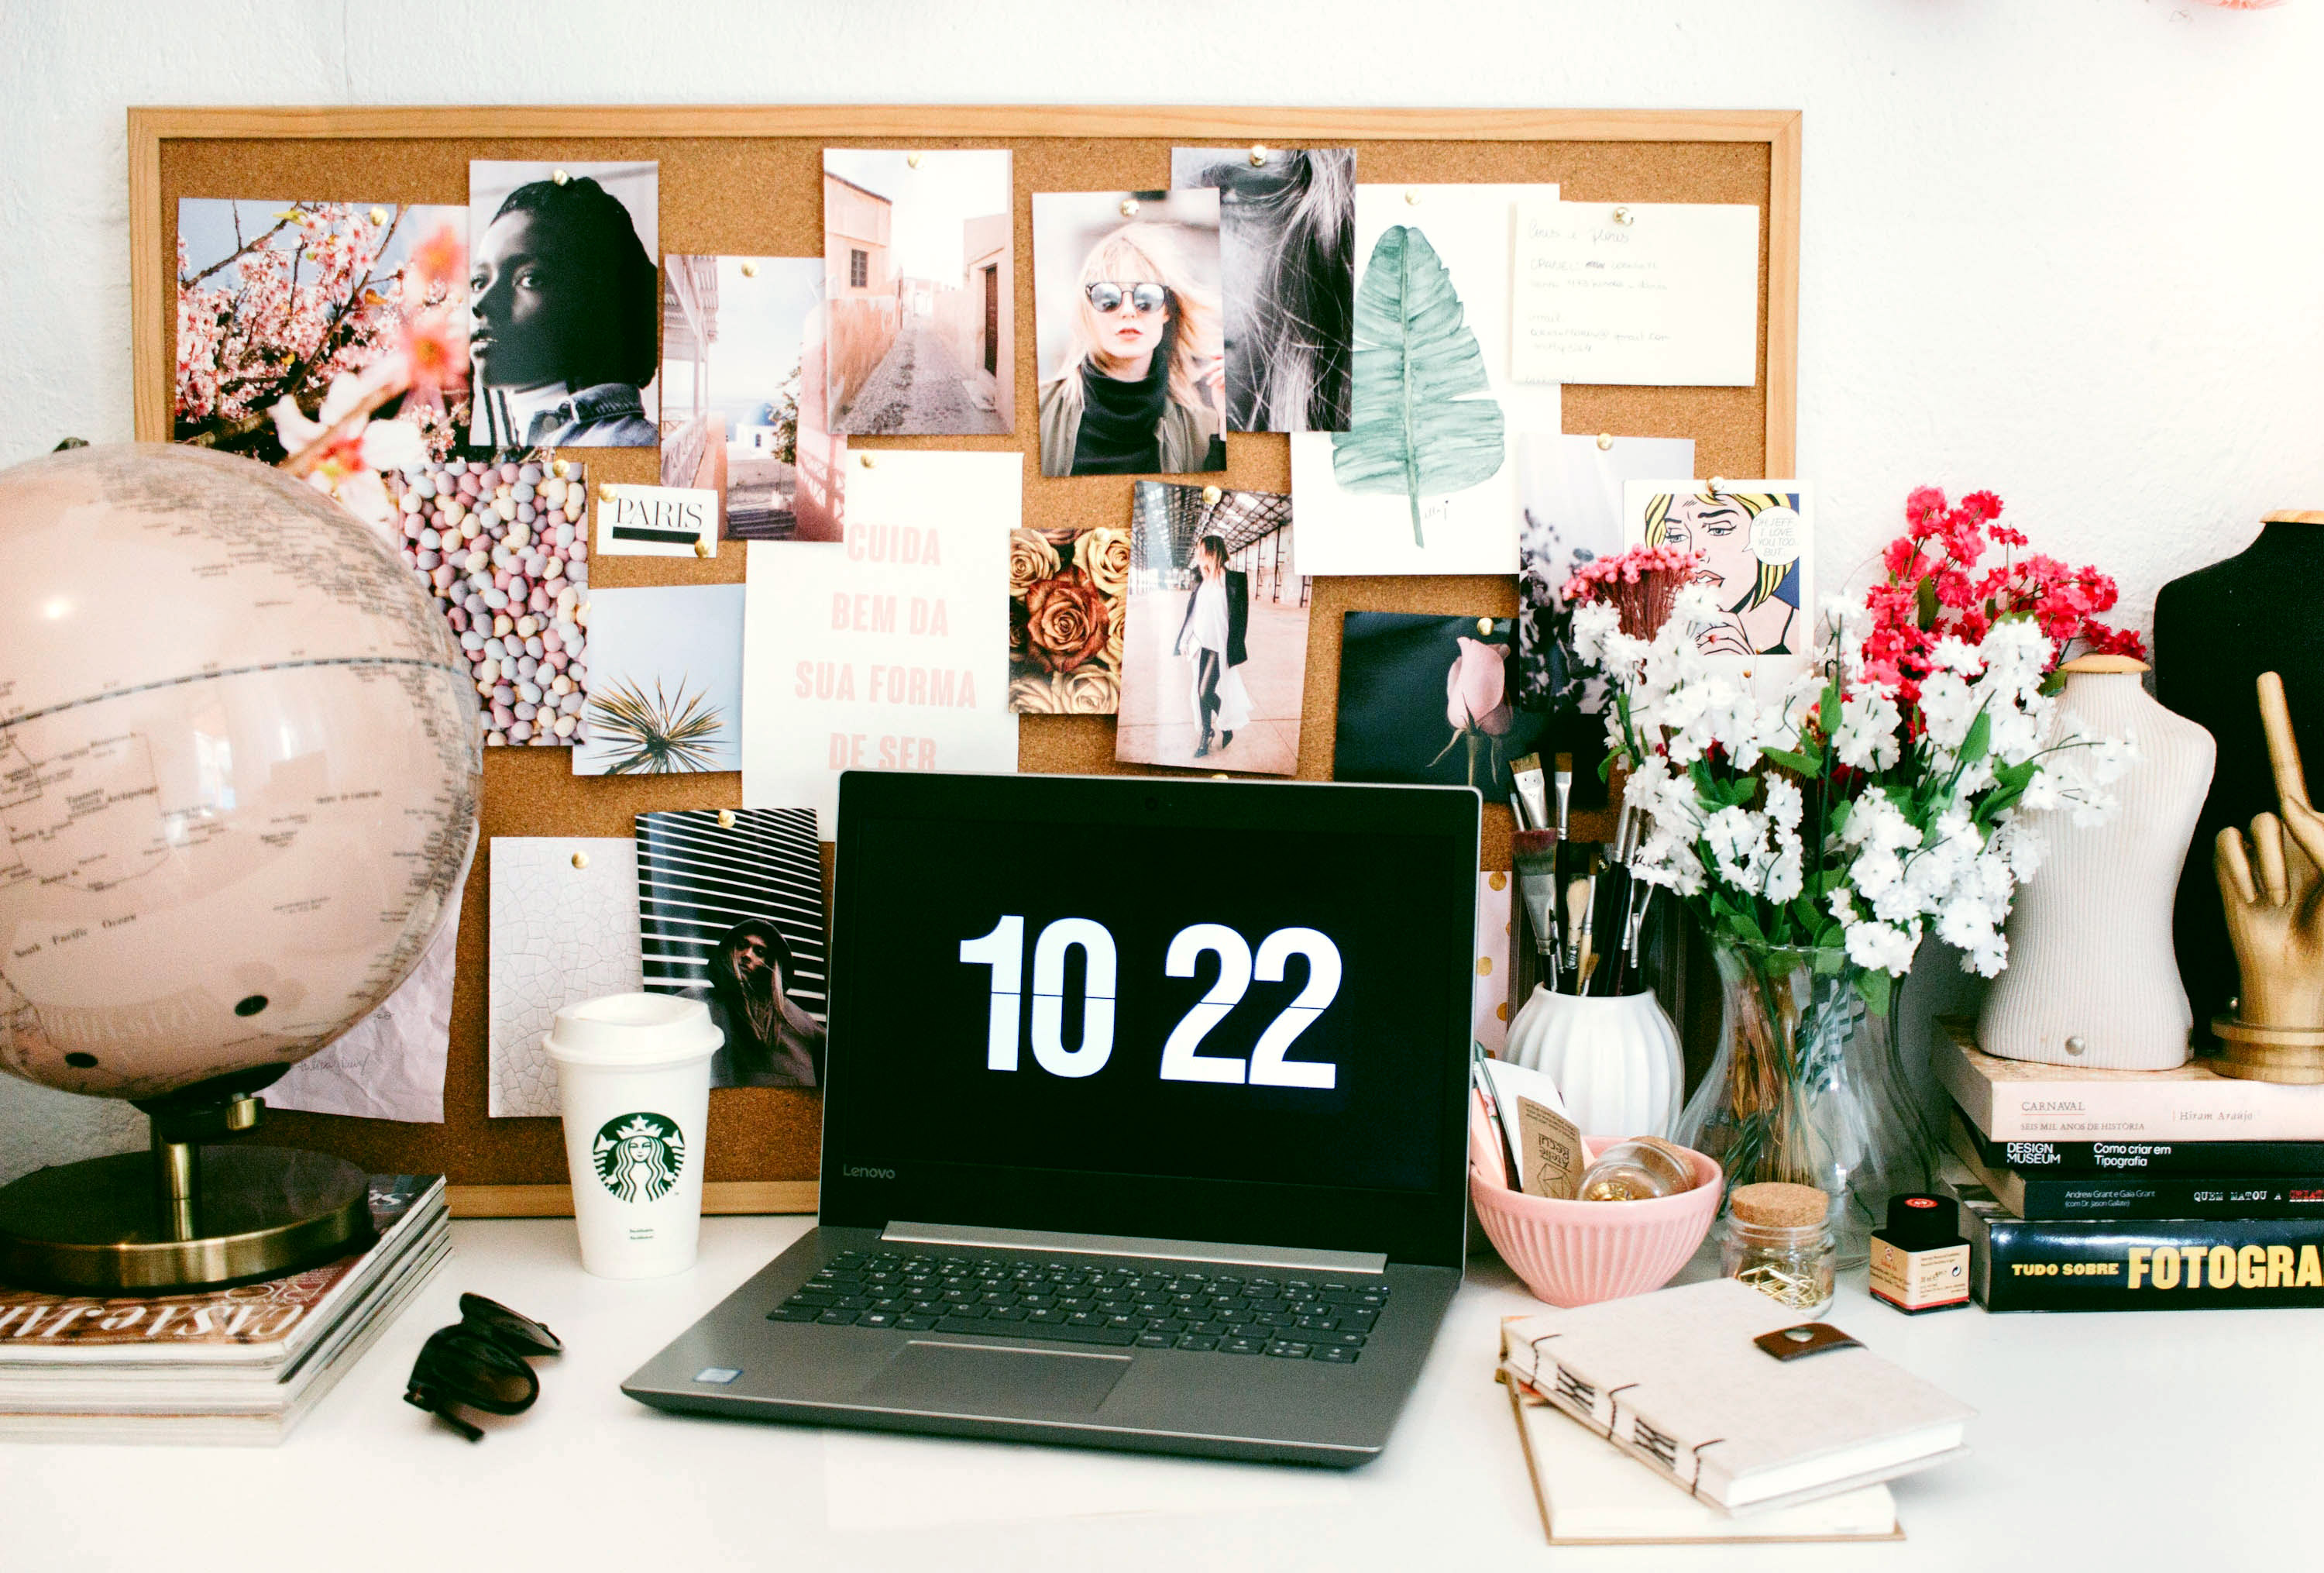 Laptop on a busy desk. Cork board filled with nice photographs on the wall